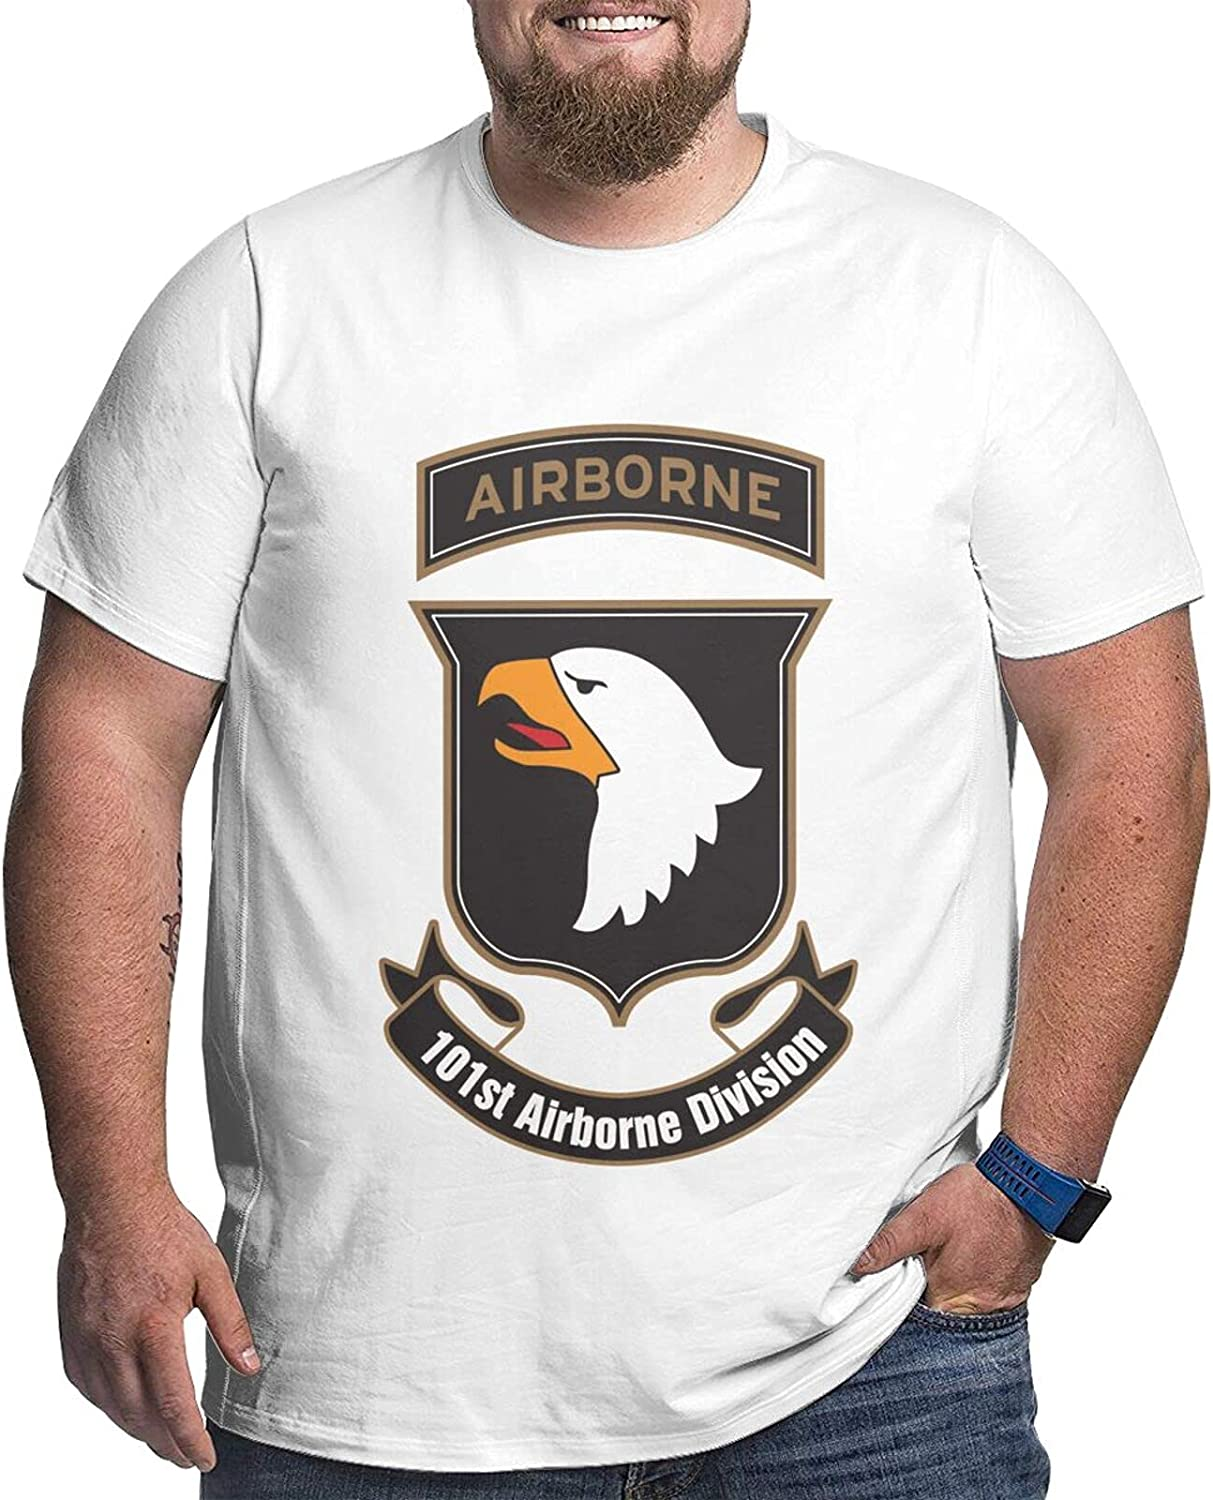 Army 101st Airborne Division Men's Simple Big Size Summer Outdoor Short Sleeve Round Collar Tops